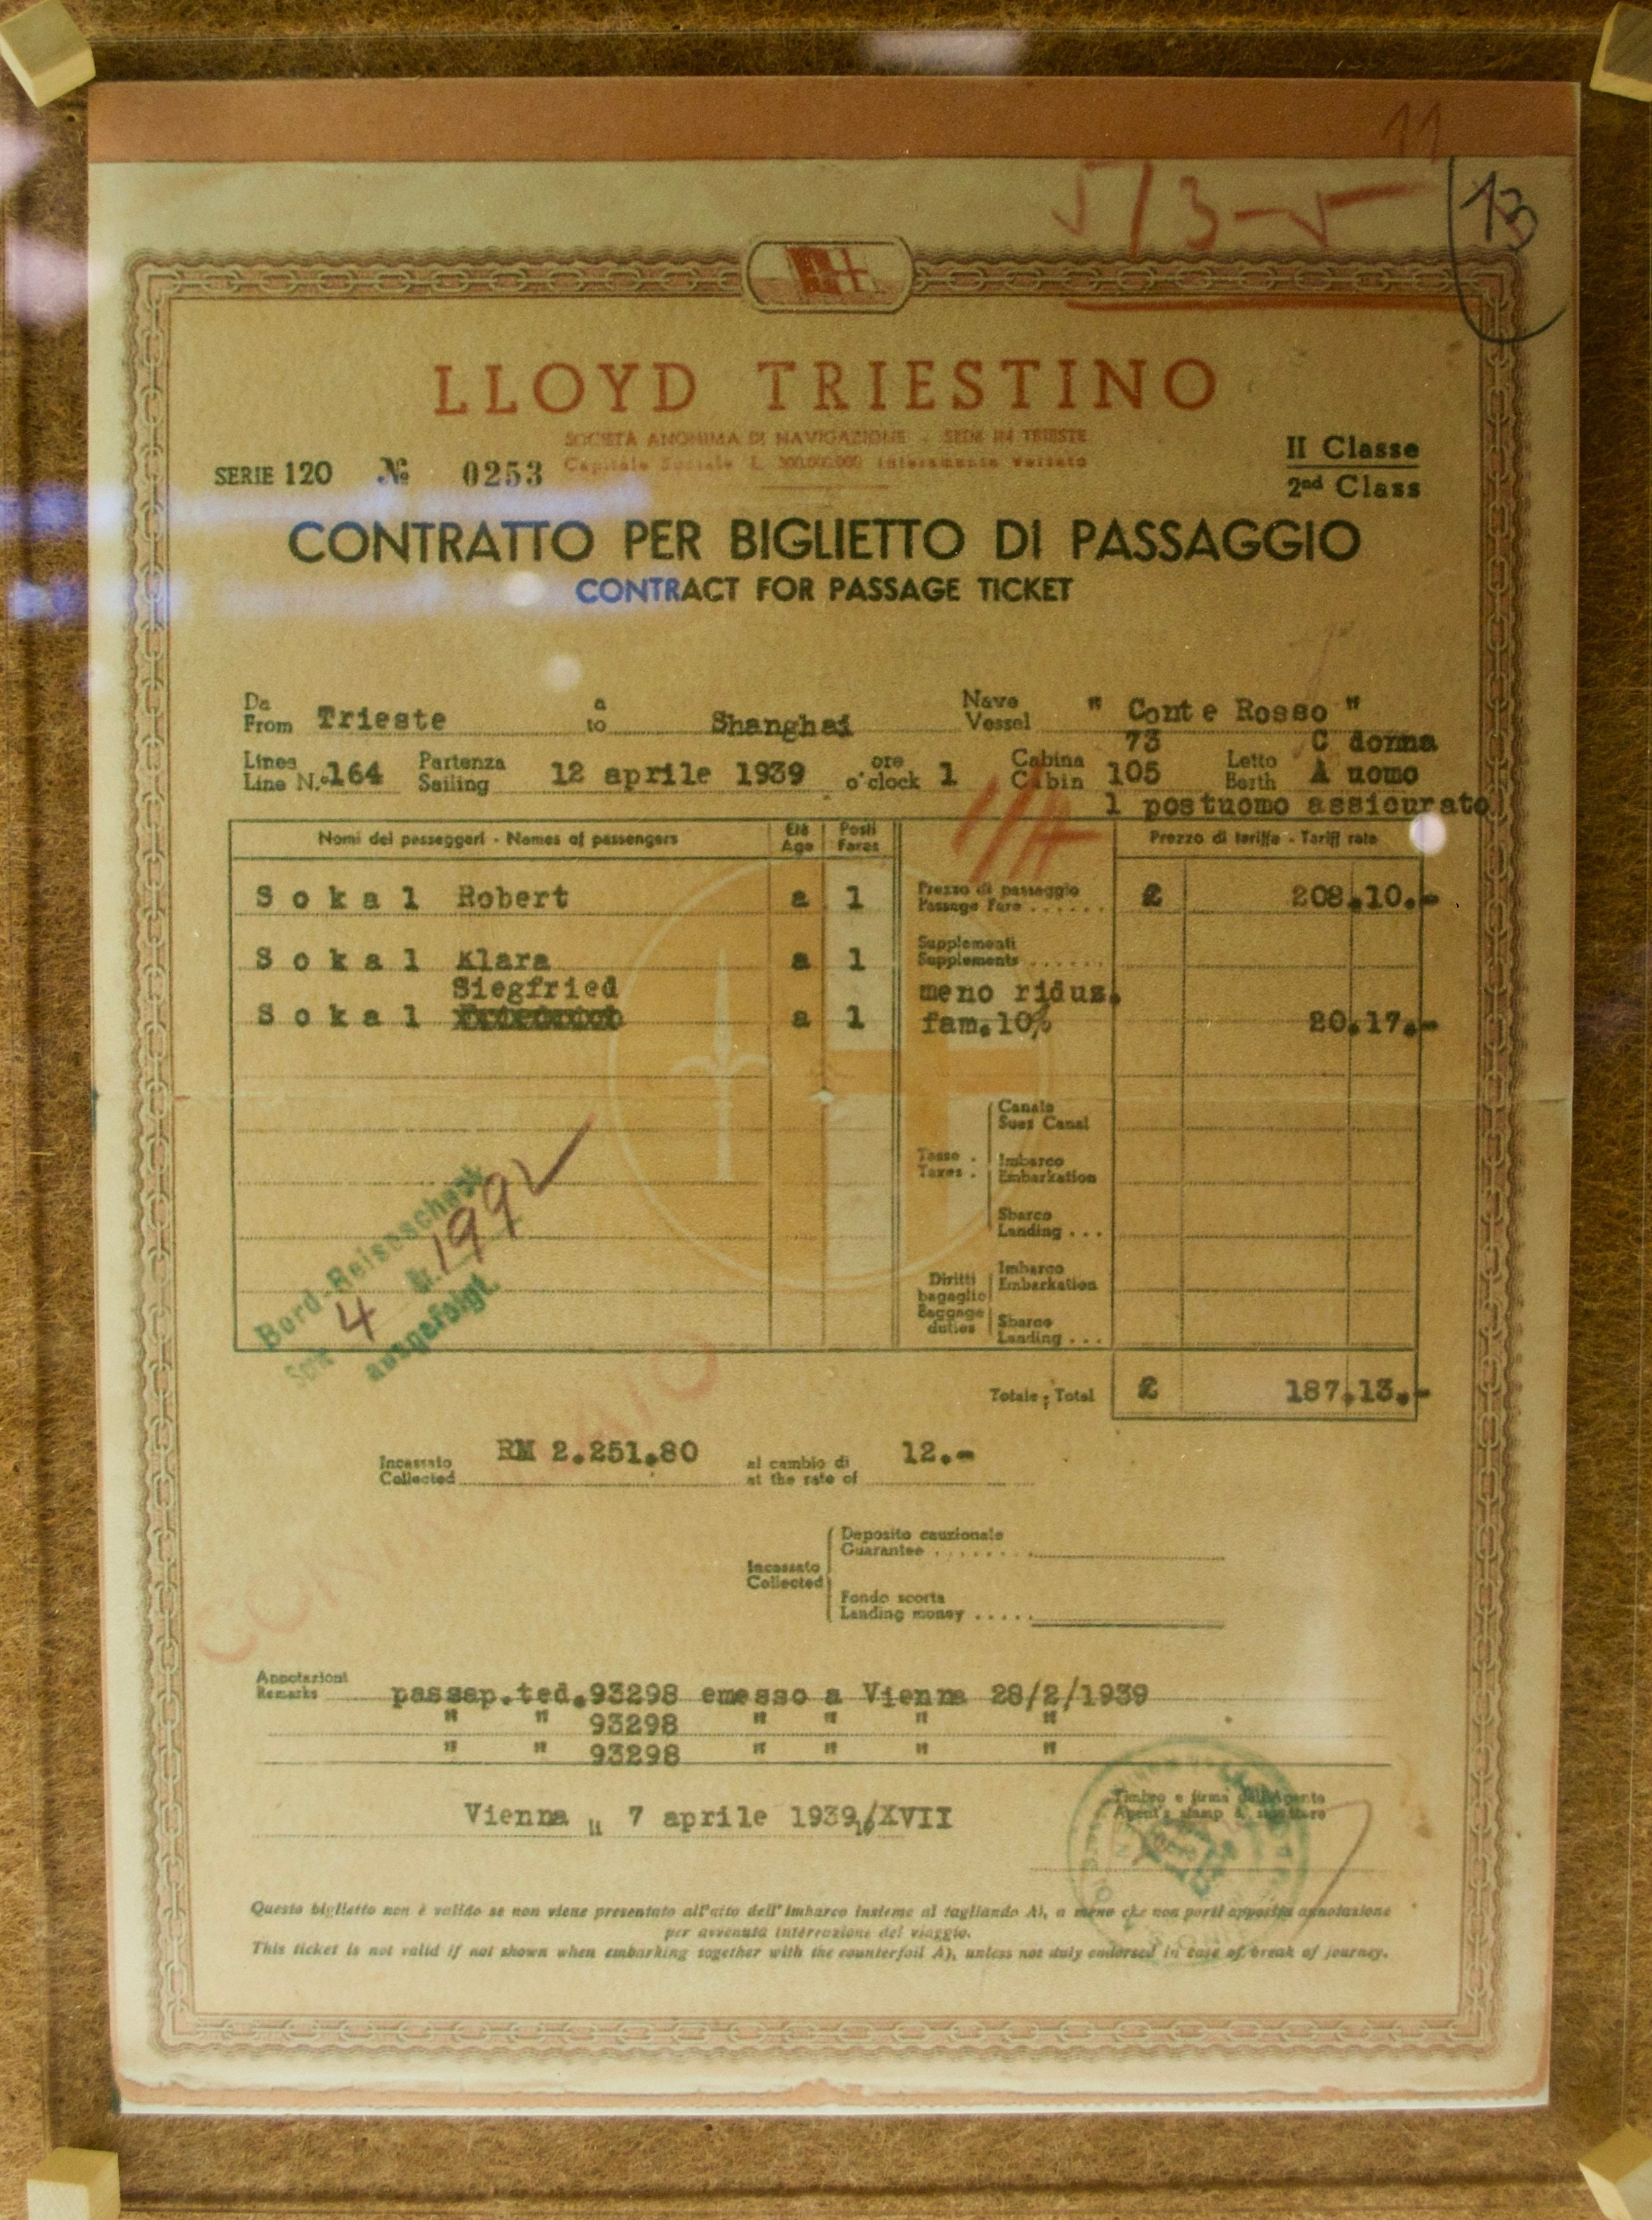 Passenger ticket for the Lloyd Triestino. [Shanghai Jewish Refugees Museum]